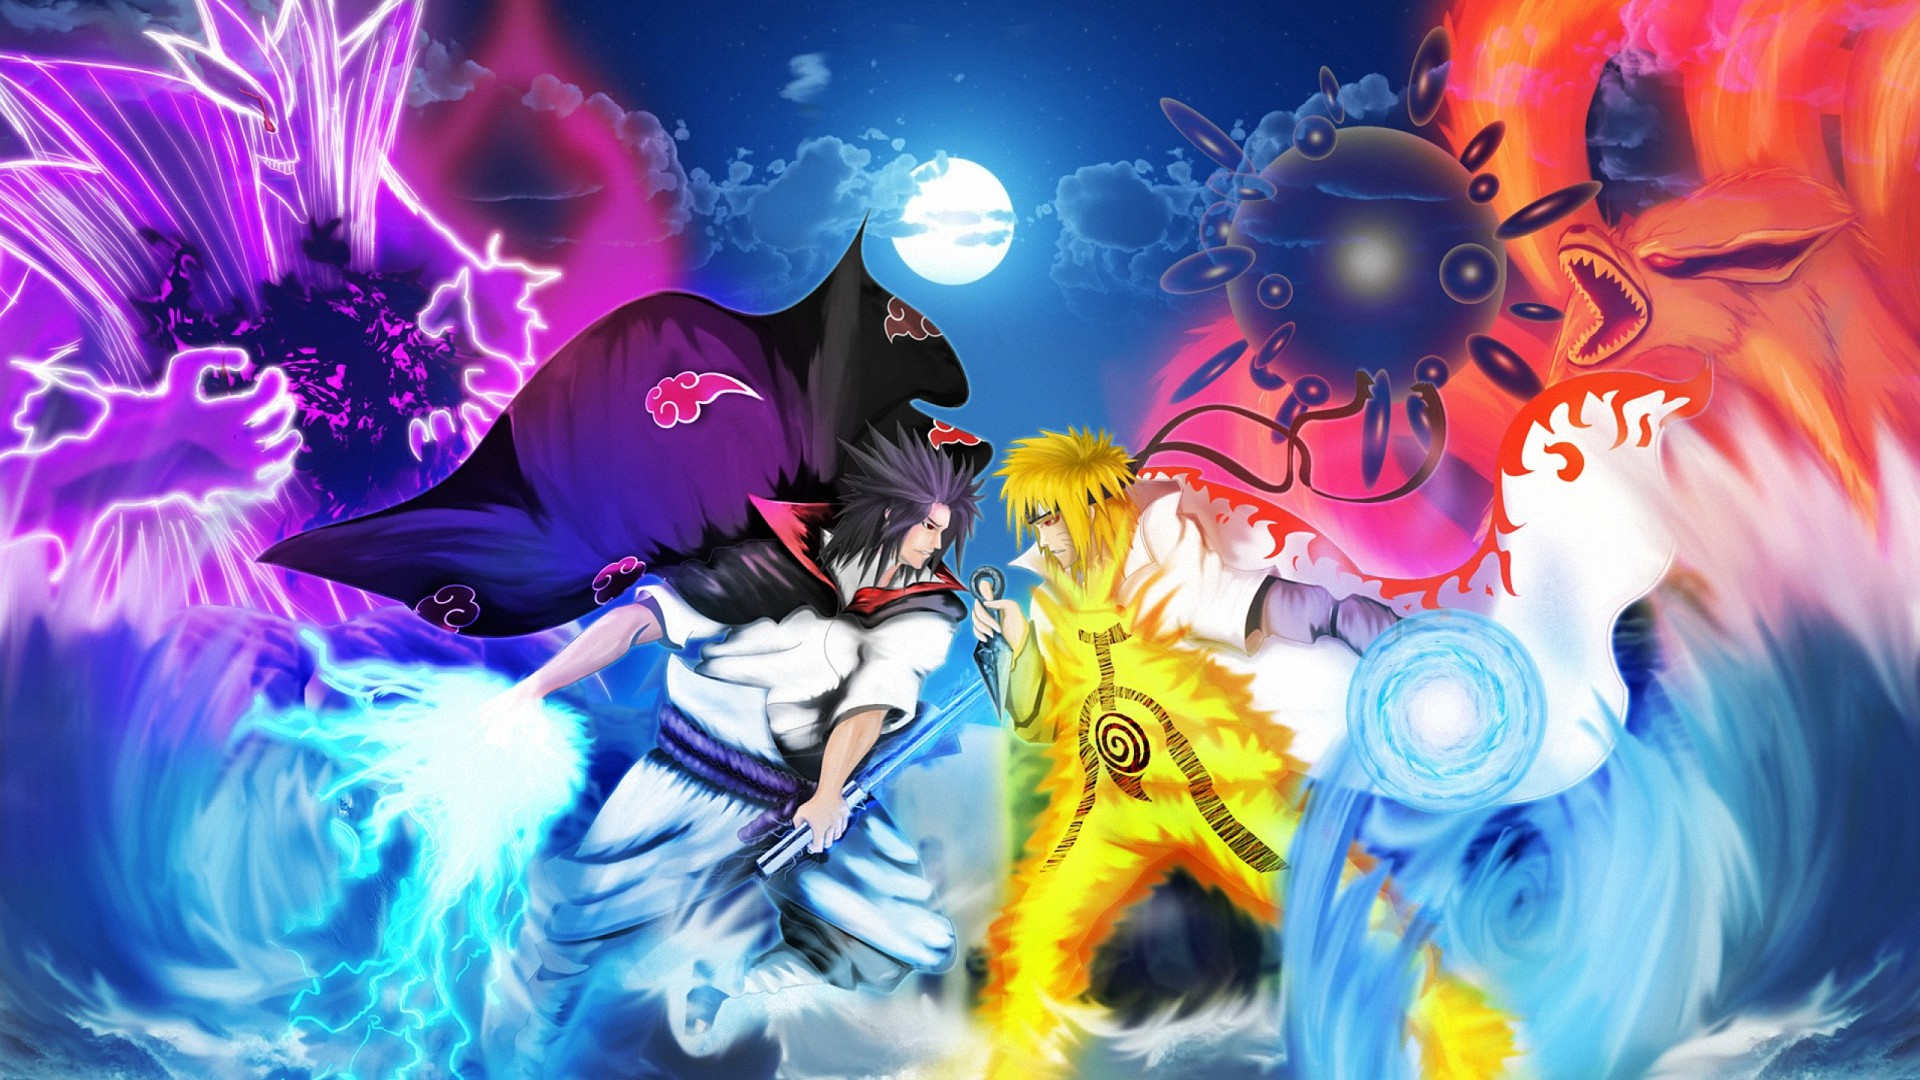 Res: 1920x1080,  naruto shippuden anime wallpapers full HD 1080p desktop  backgrounds